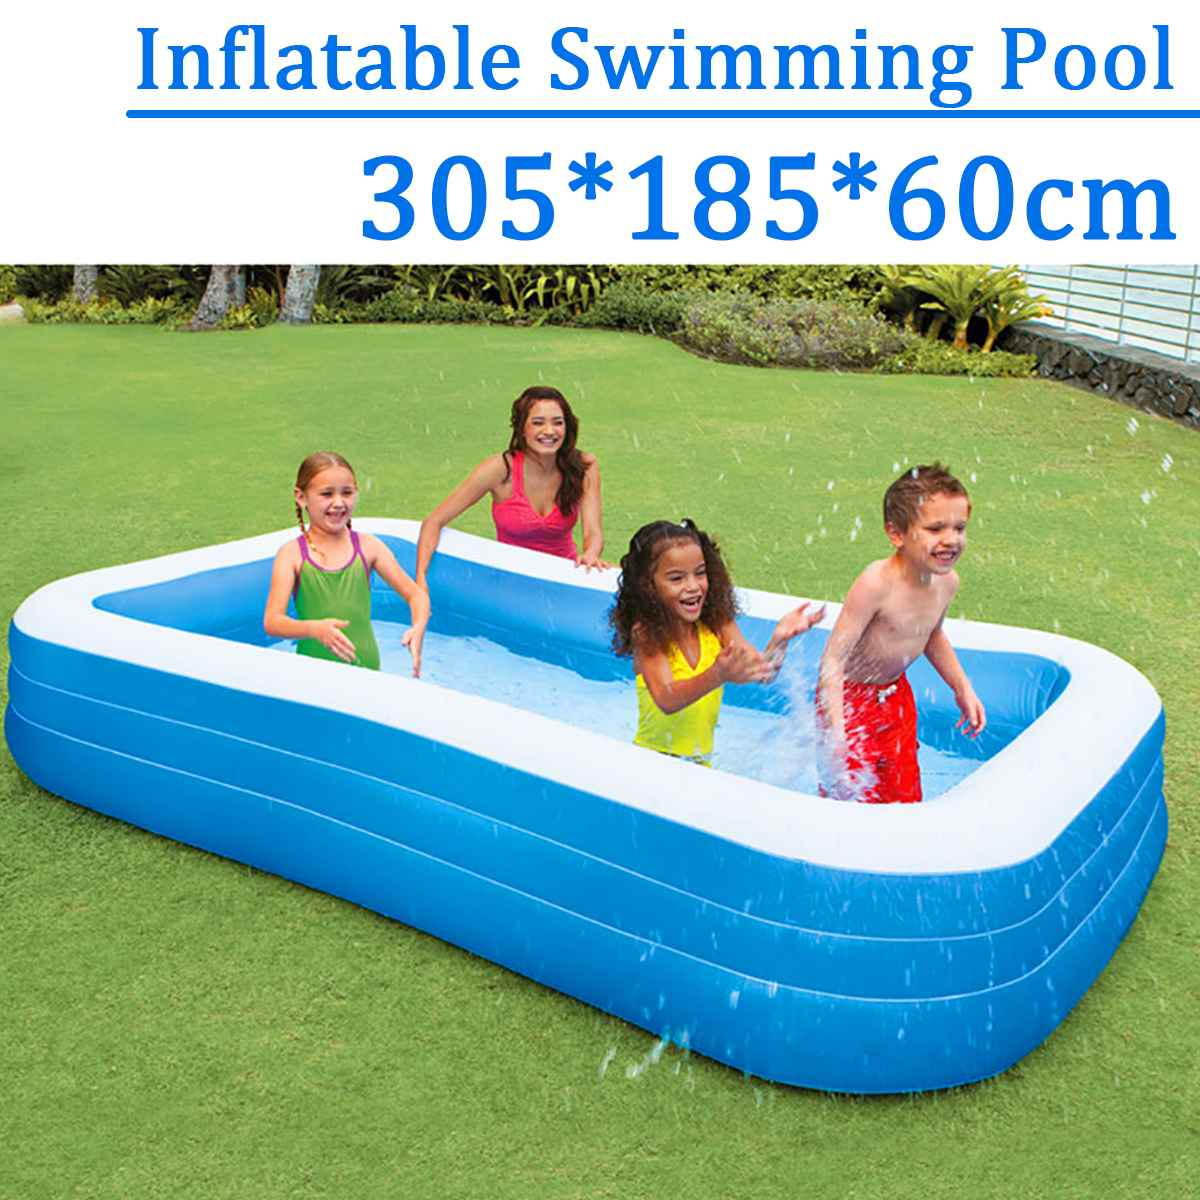 305x185x60cm Childrens Home Use Paddling Pool Large Size Inflatable Square Swimming Pool Heat Preservation Kids inflatable Pool305x185x60cm Childrens Home Use Paddling Pool Large Size Inflatable Square Swimming Pool Heat Preservation Kids inflatable Pool